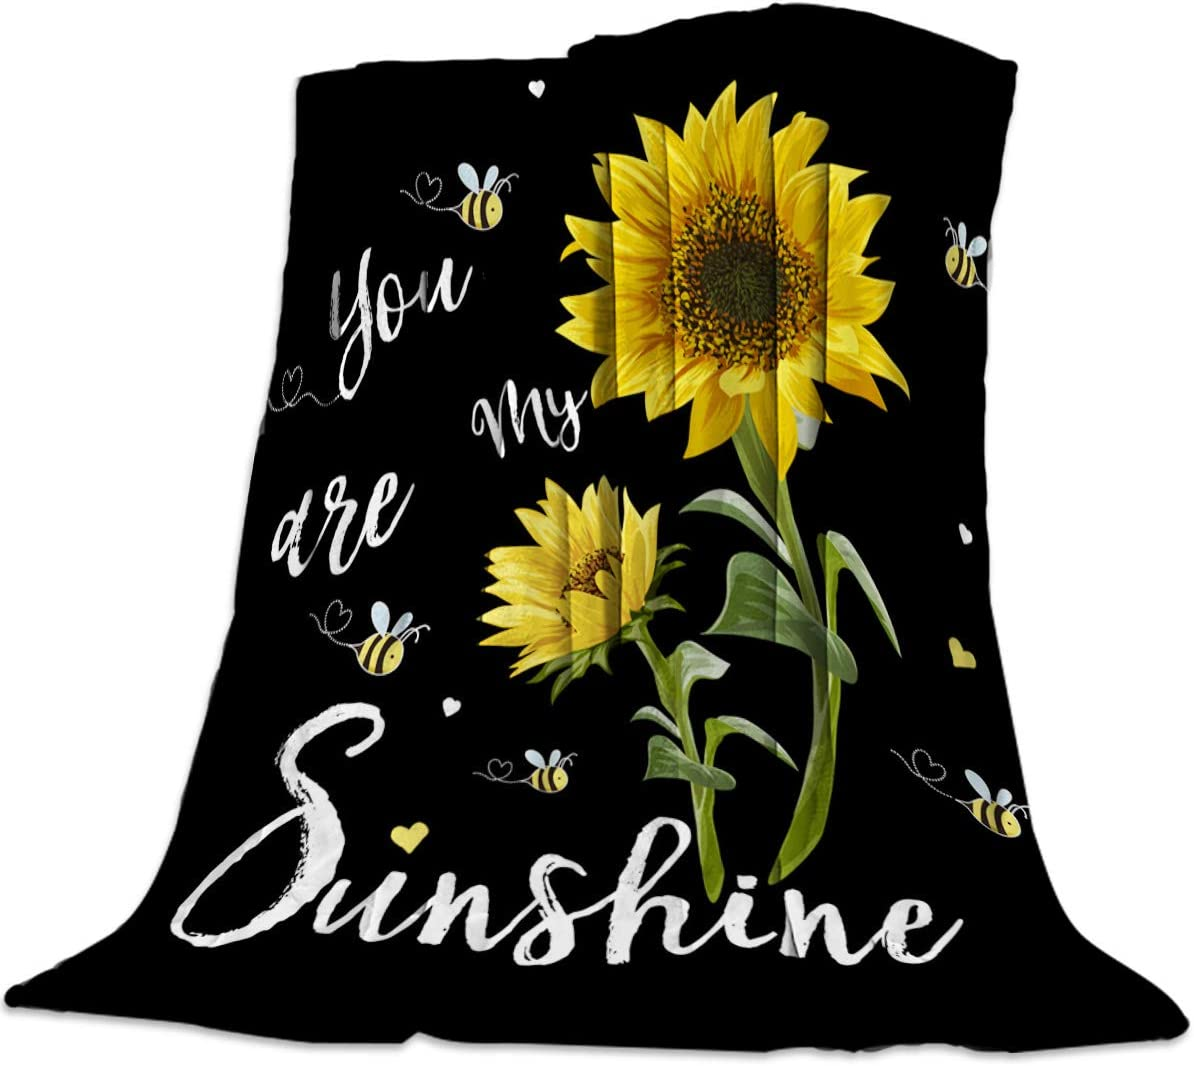 Fleece Blanket Throw Lightweight Super Soft Cozy Luxury Microfiber All Season Bed Blanket - Sunflowers You are My Sunshine (40 x 50 Inches)